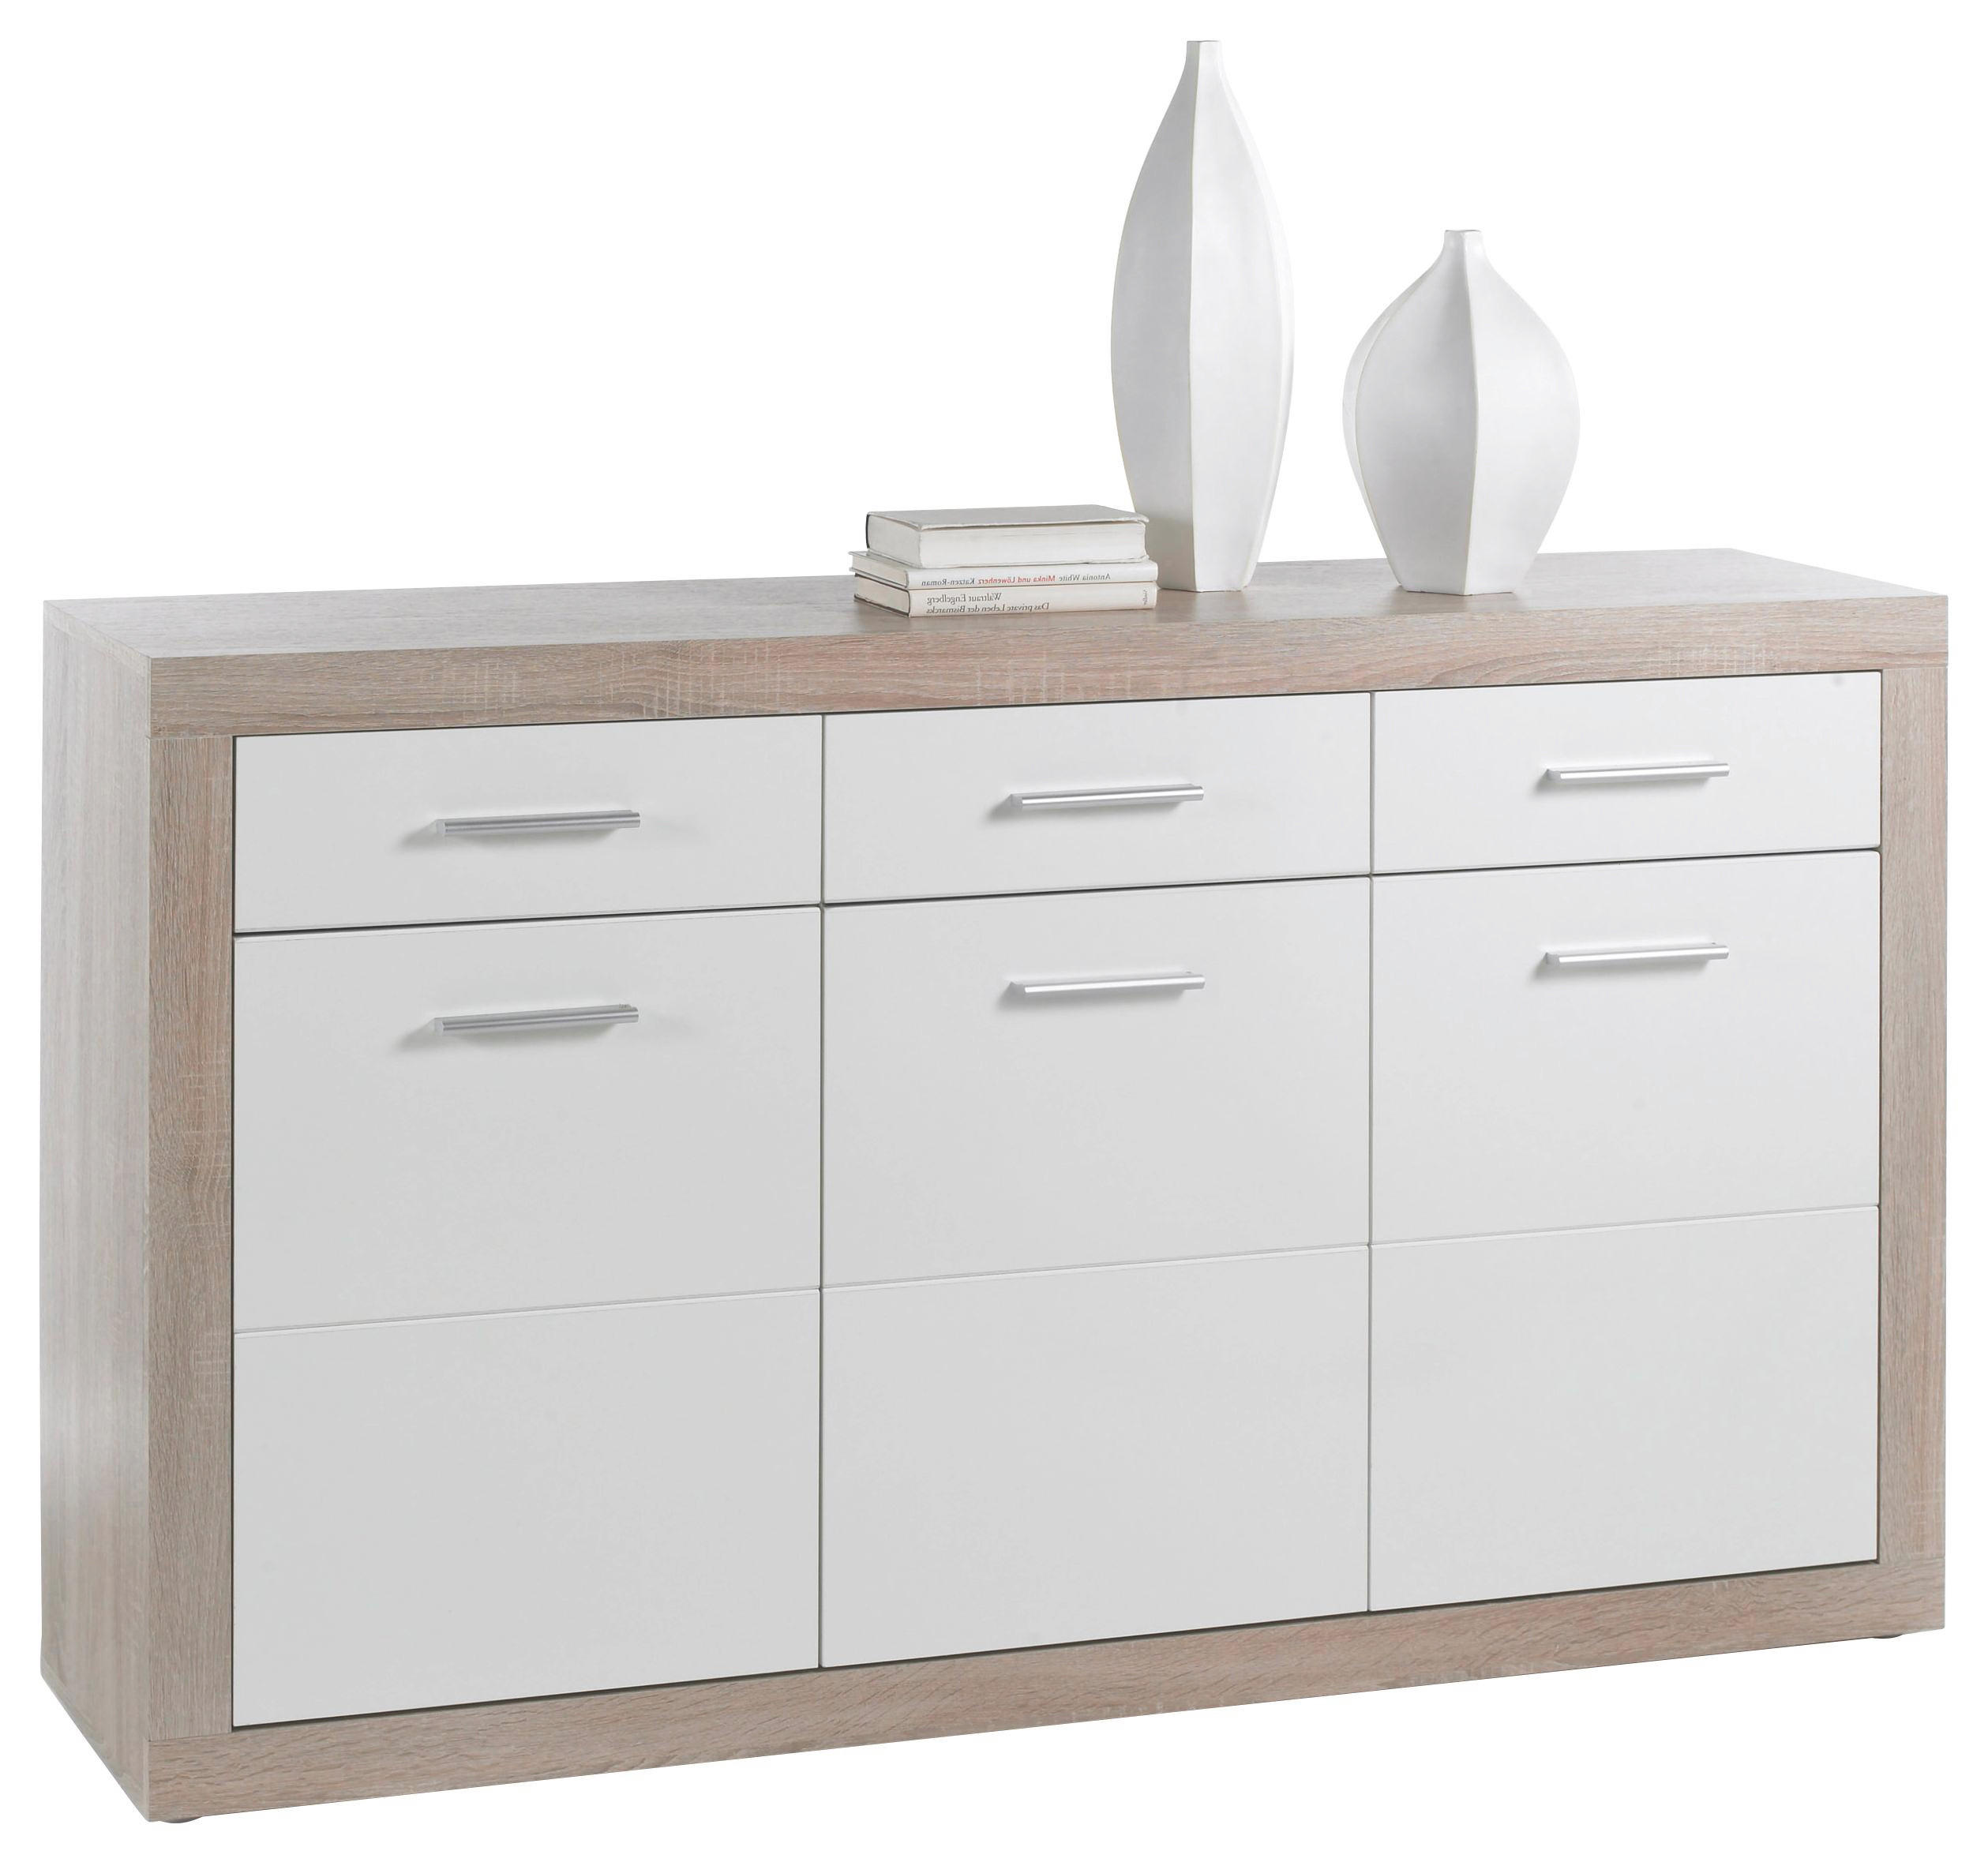 Langes Sideboard Sideboard Wei Design Elegant Wohndesign With Sideboard Wei Design